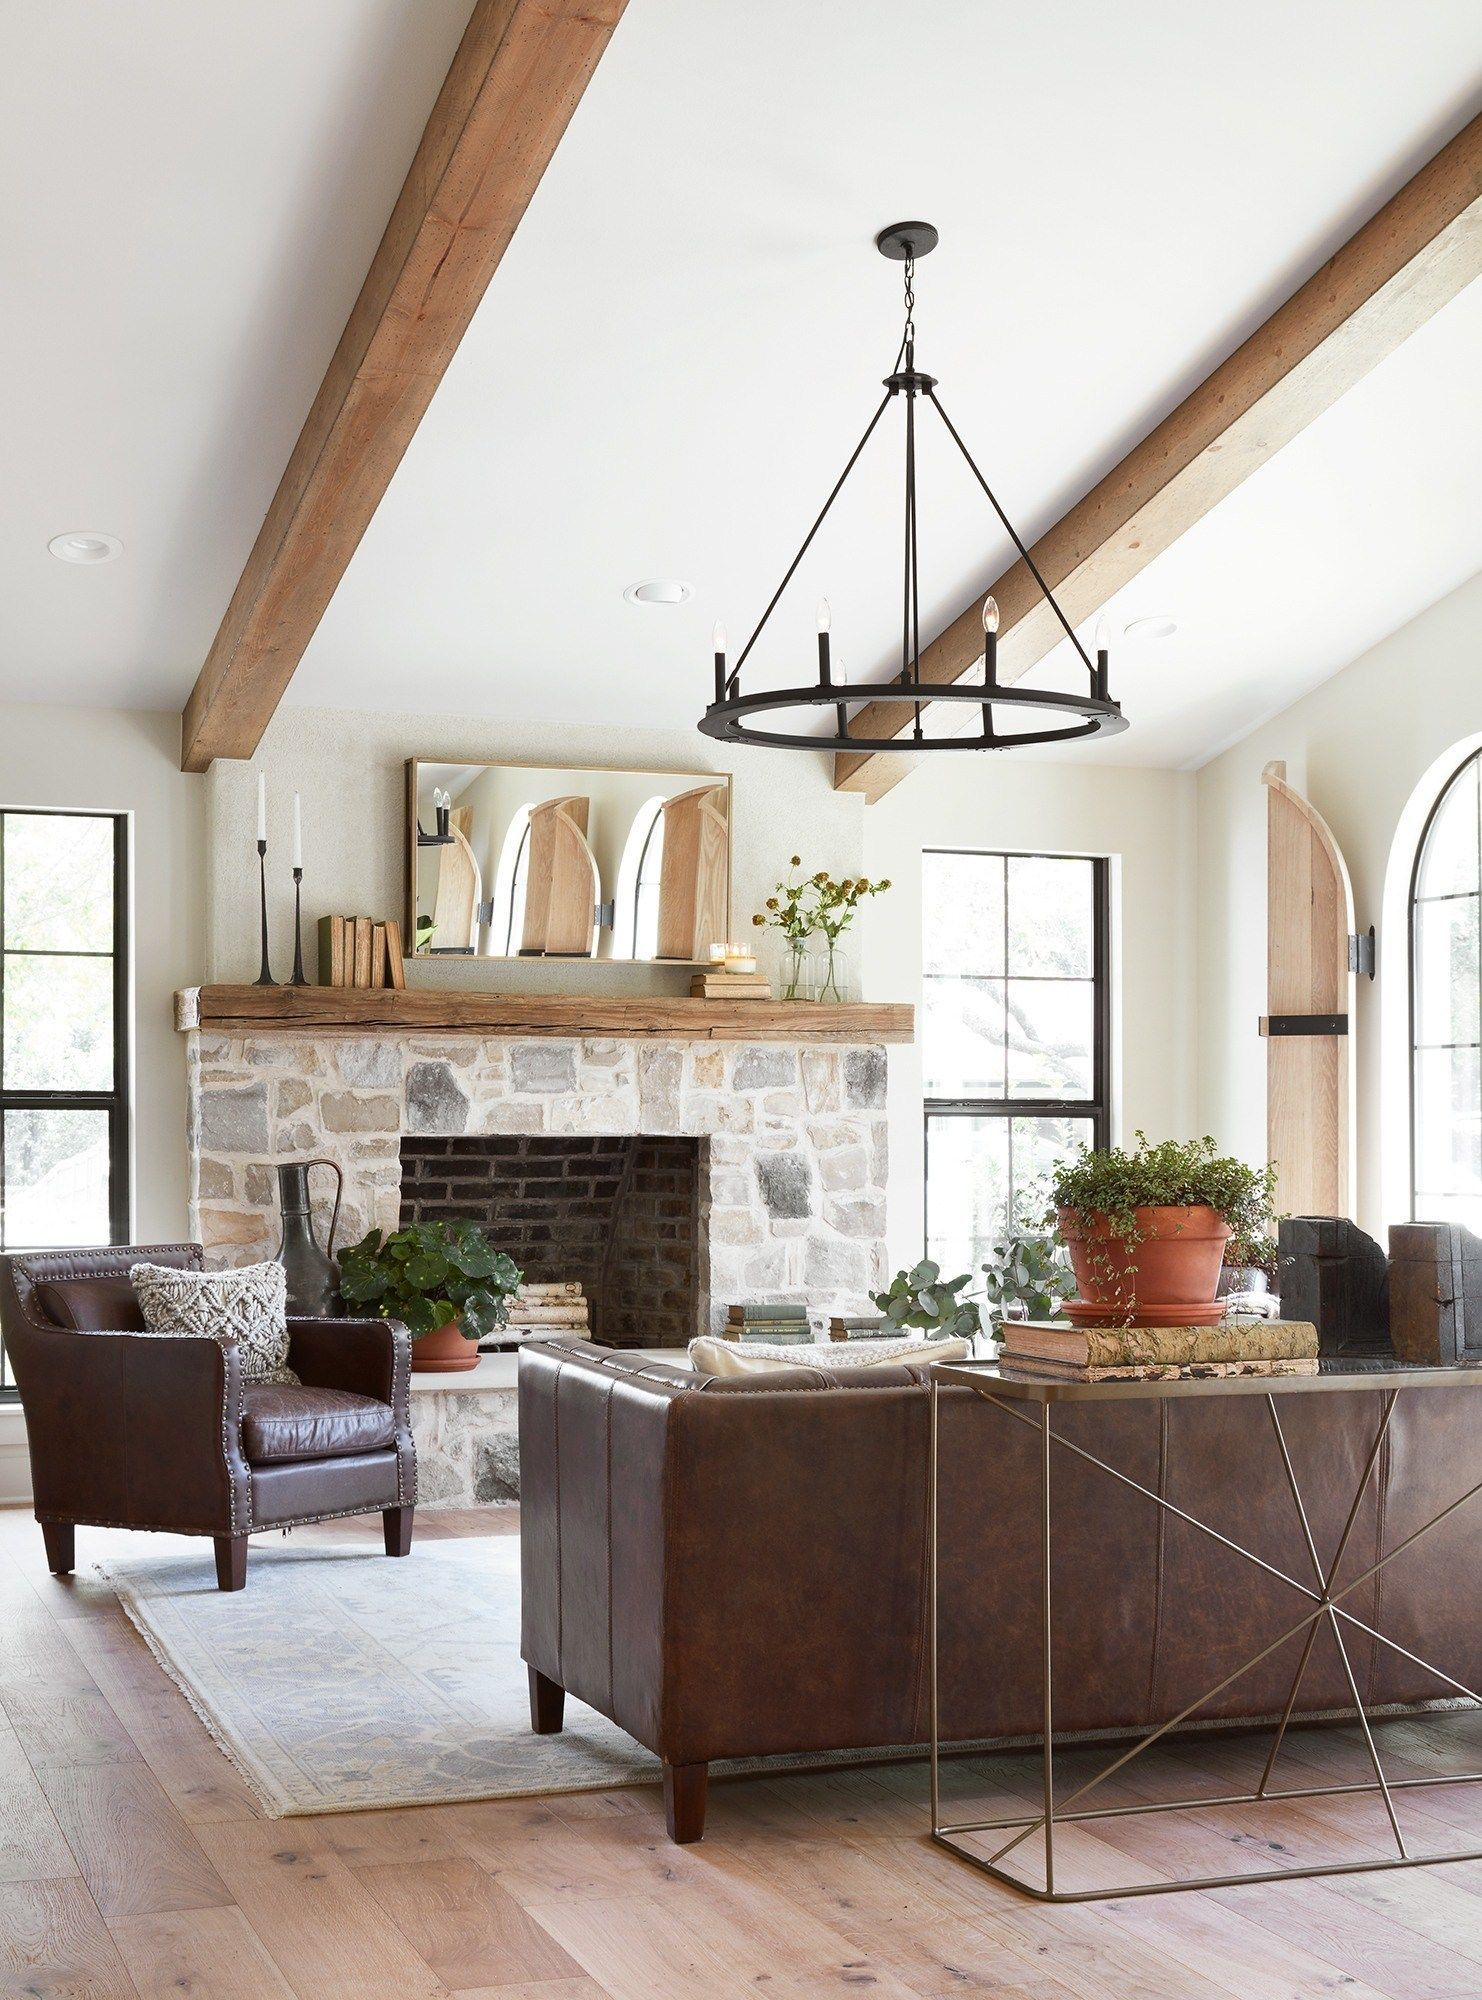 10 Best Living Rooms By Joanna Gaines from Fixer Upper  Nikkis Plate  10 Best Living Rooms by Joanna Gaines  A round up post of the best living rooms by Joanna Gaines